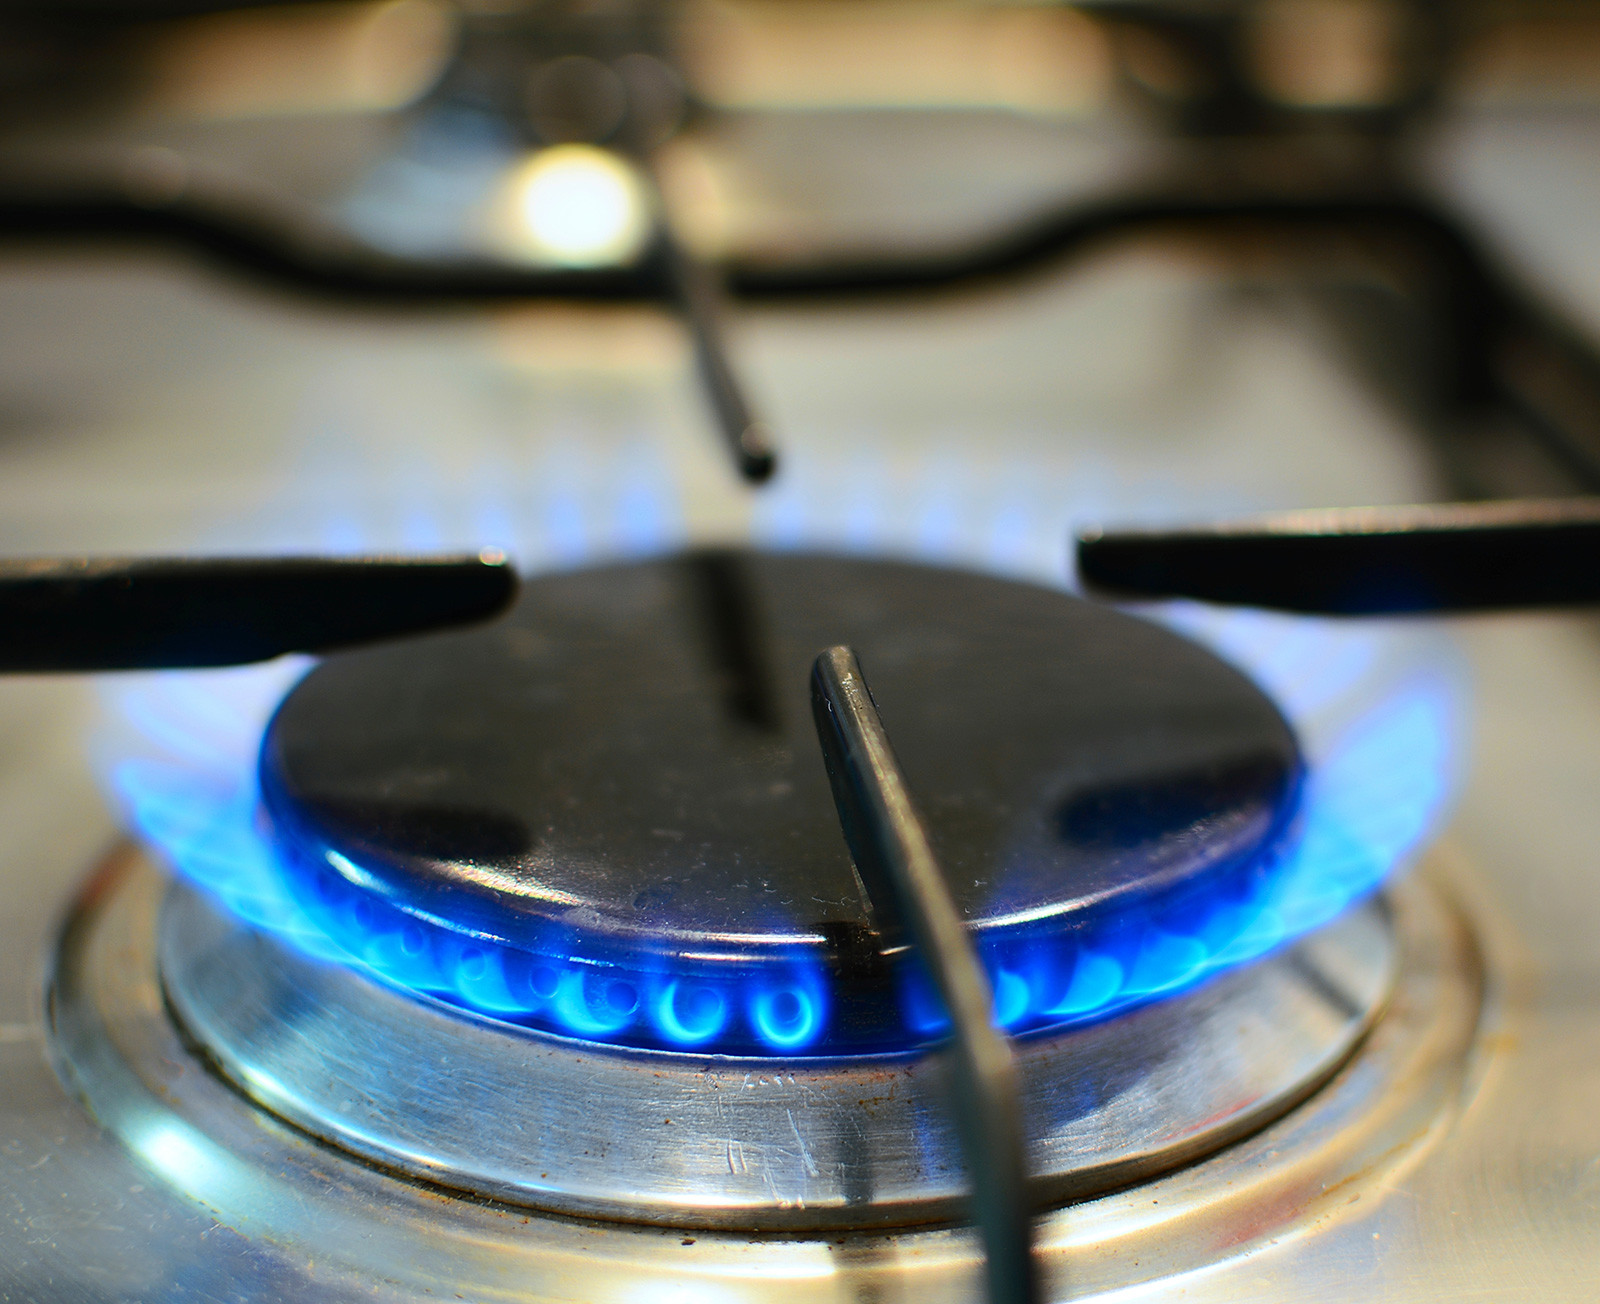 A gas stove burner turned on, creating a blue flame.